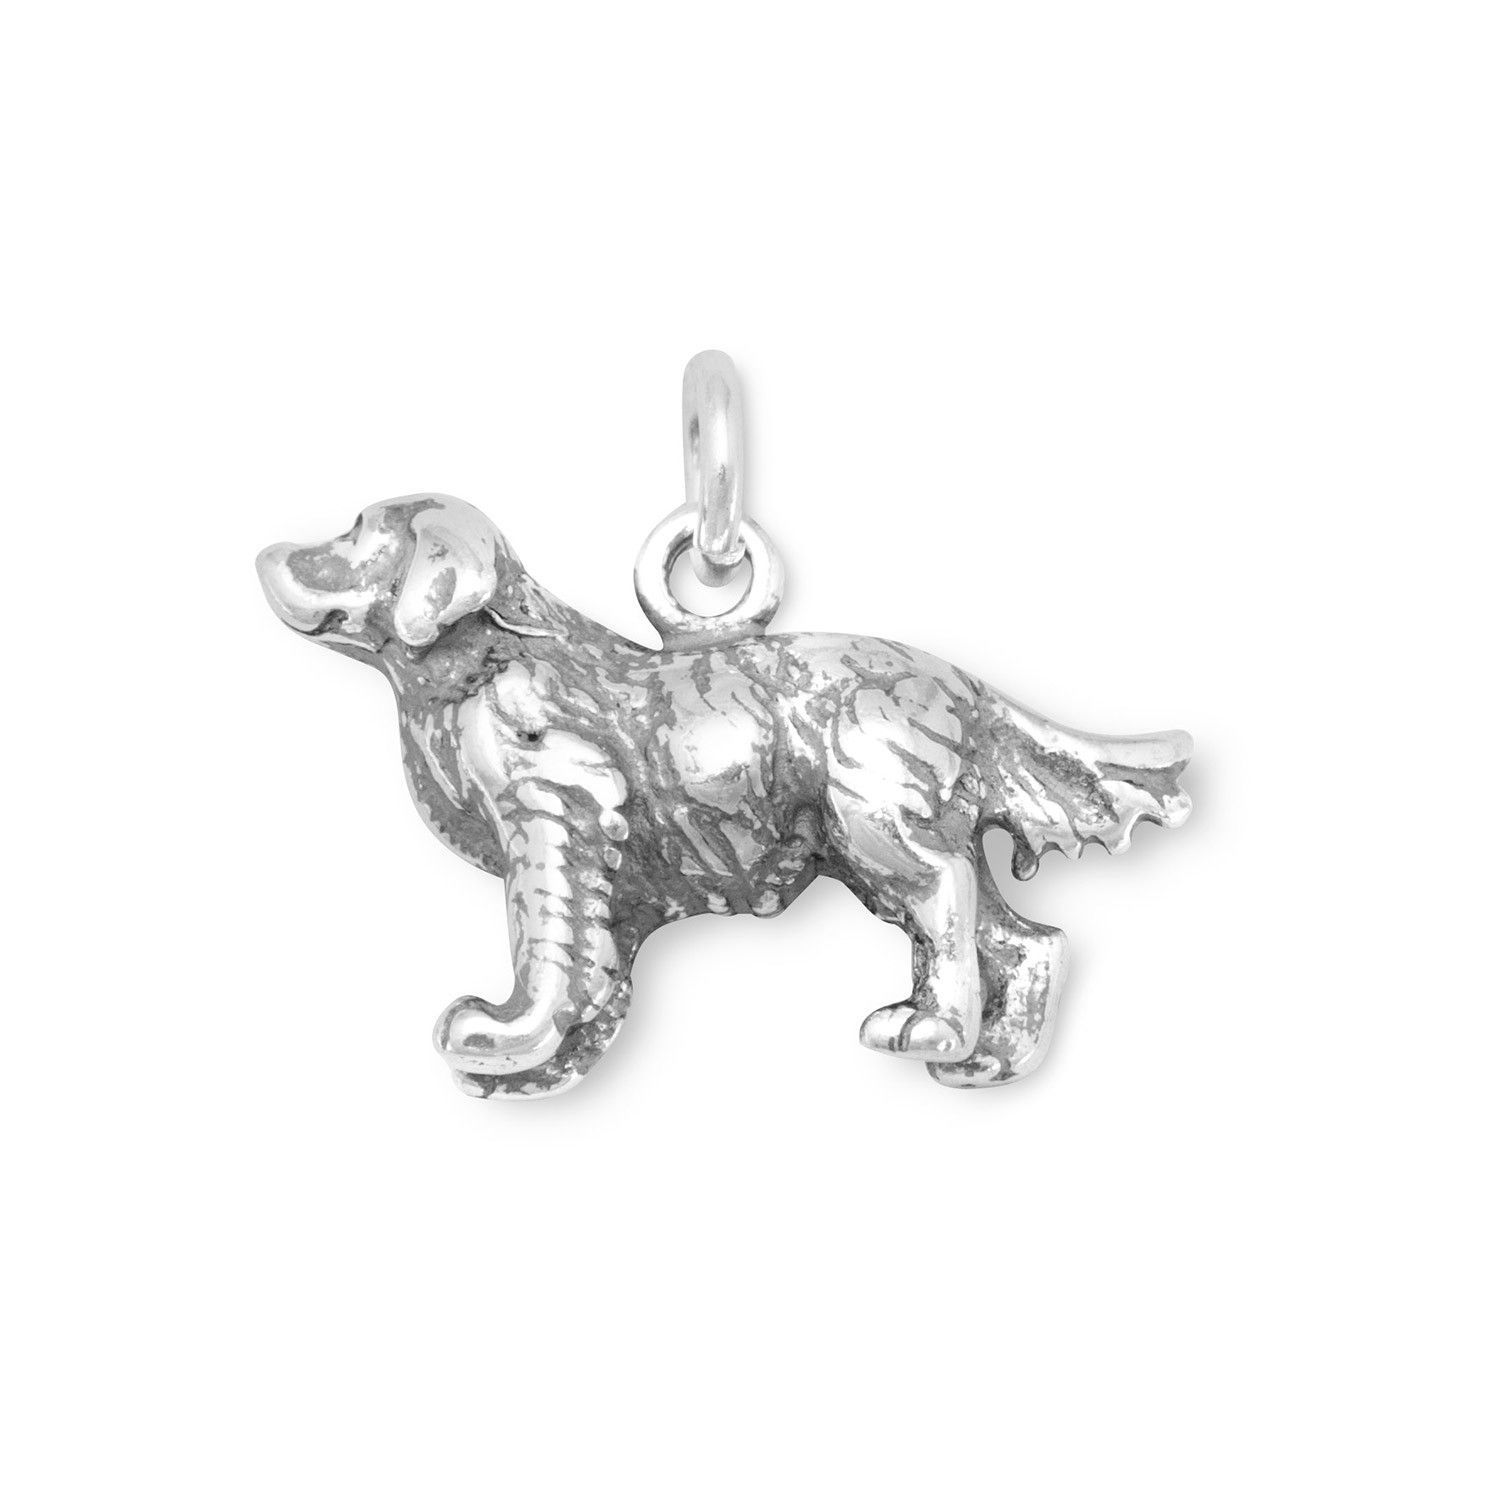 Golden Retriever Charm Dogs Golden Retriever Golden Jewelry